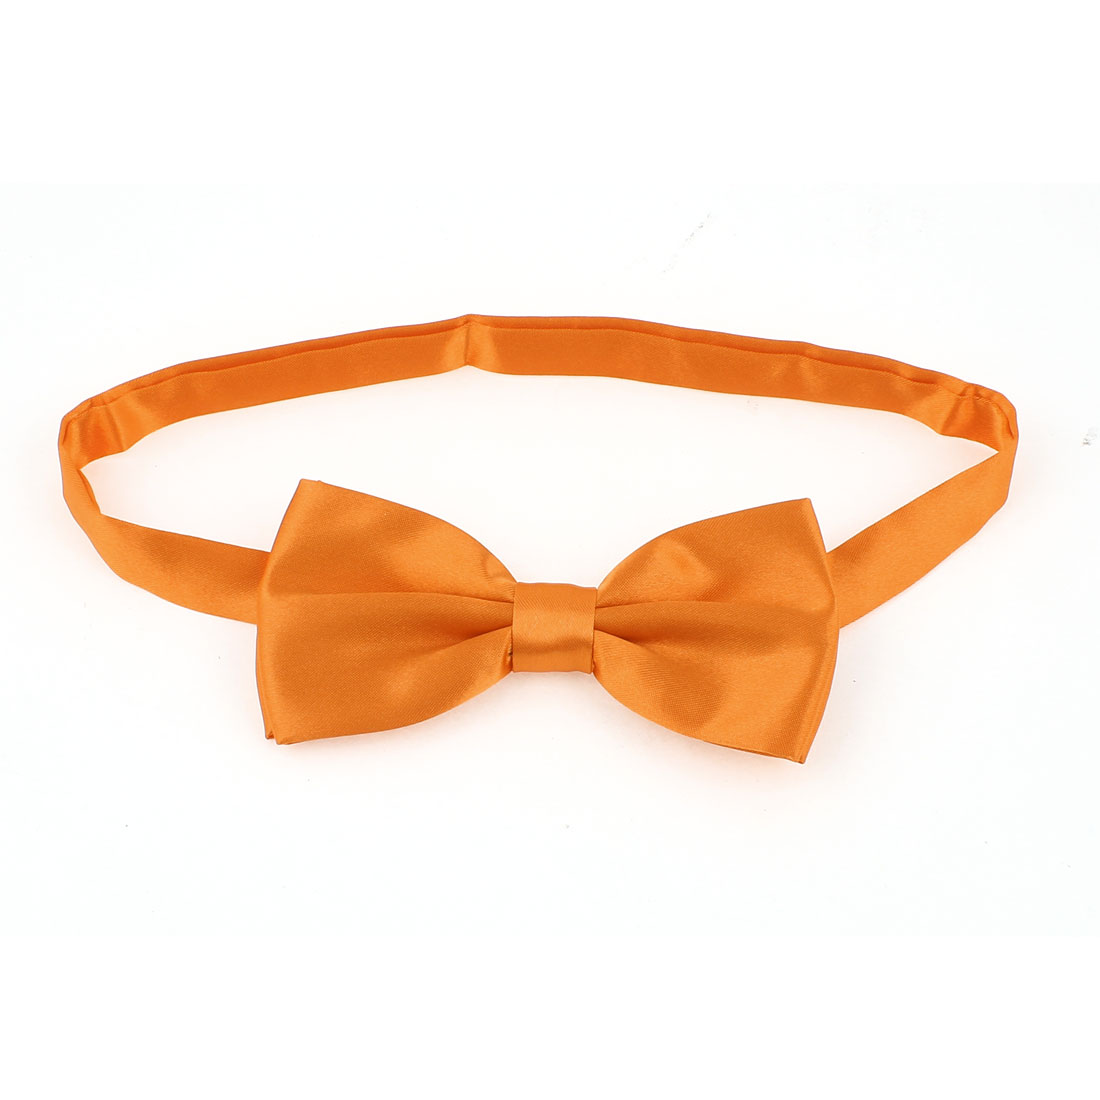 Metal Buckle Adjustable Strap Pet Dog Yorkie Puppy Collar Bowtie Necktie Orange